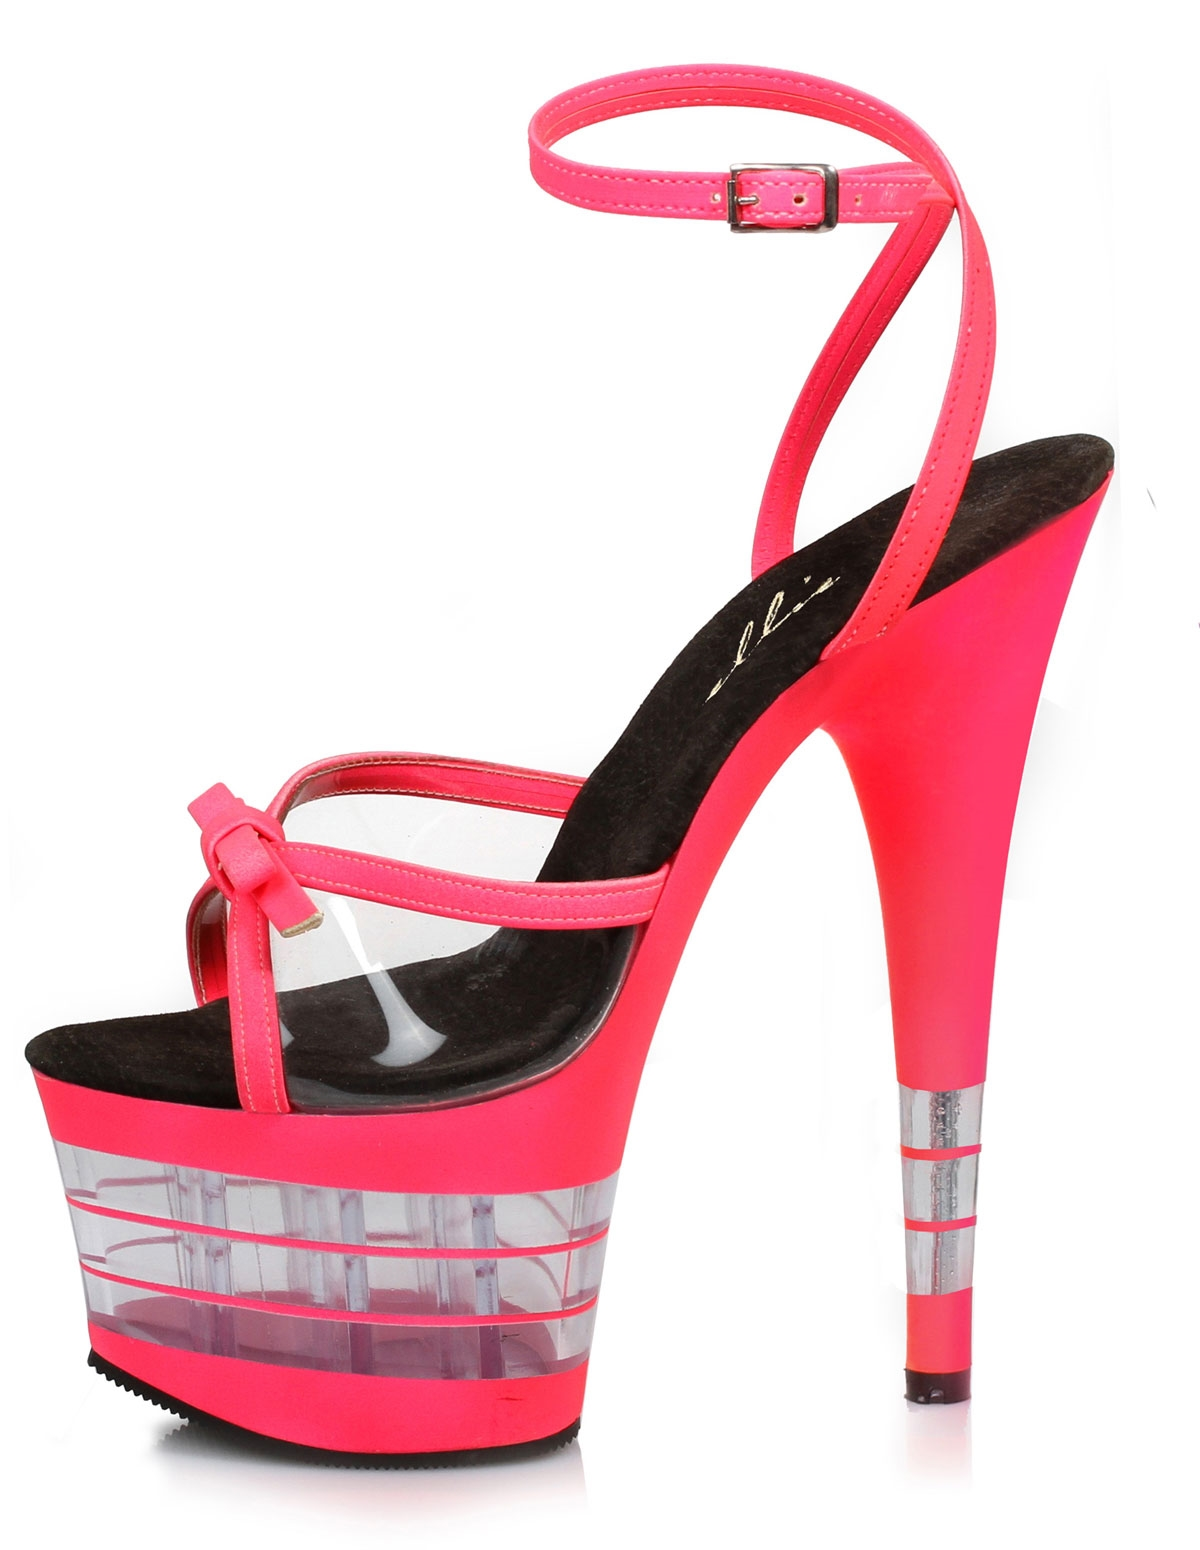 Degree 7 Inch Platform With Bow